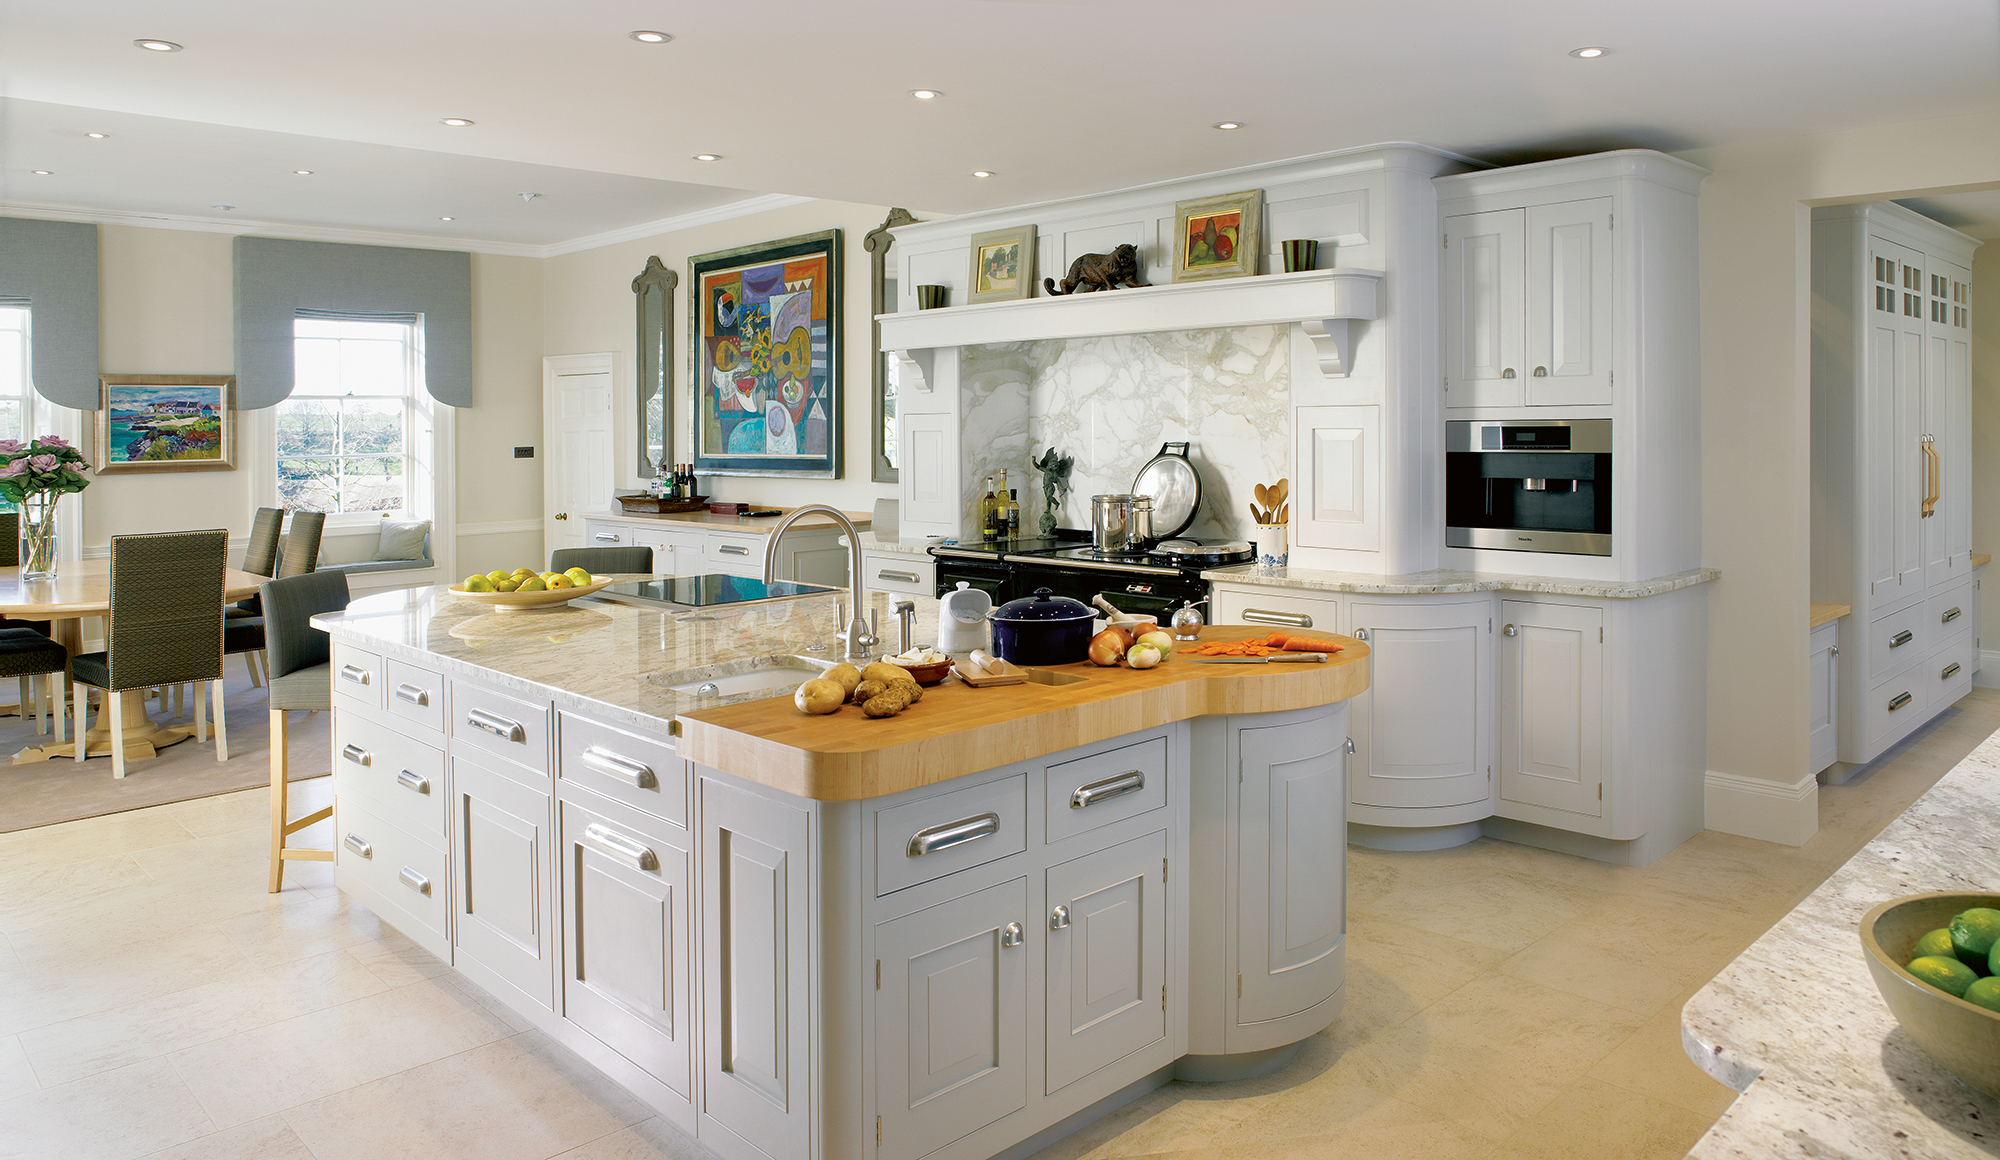 Mark wilkinson furniture collection english classic kitchen 7